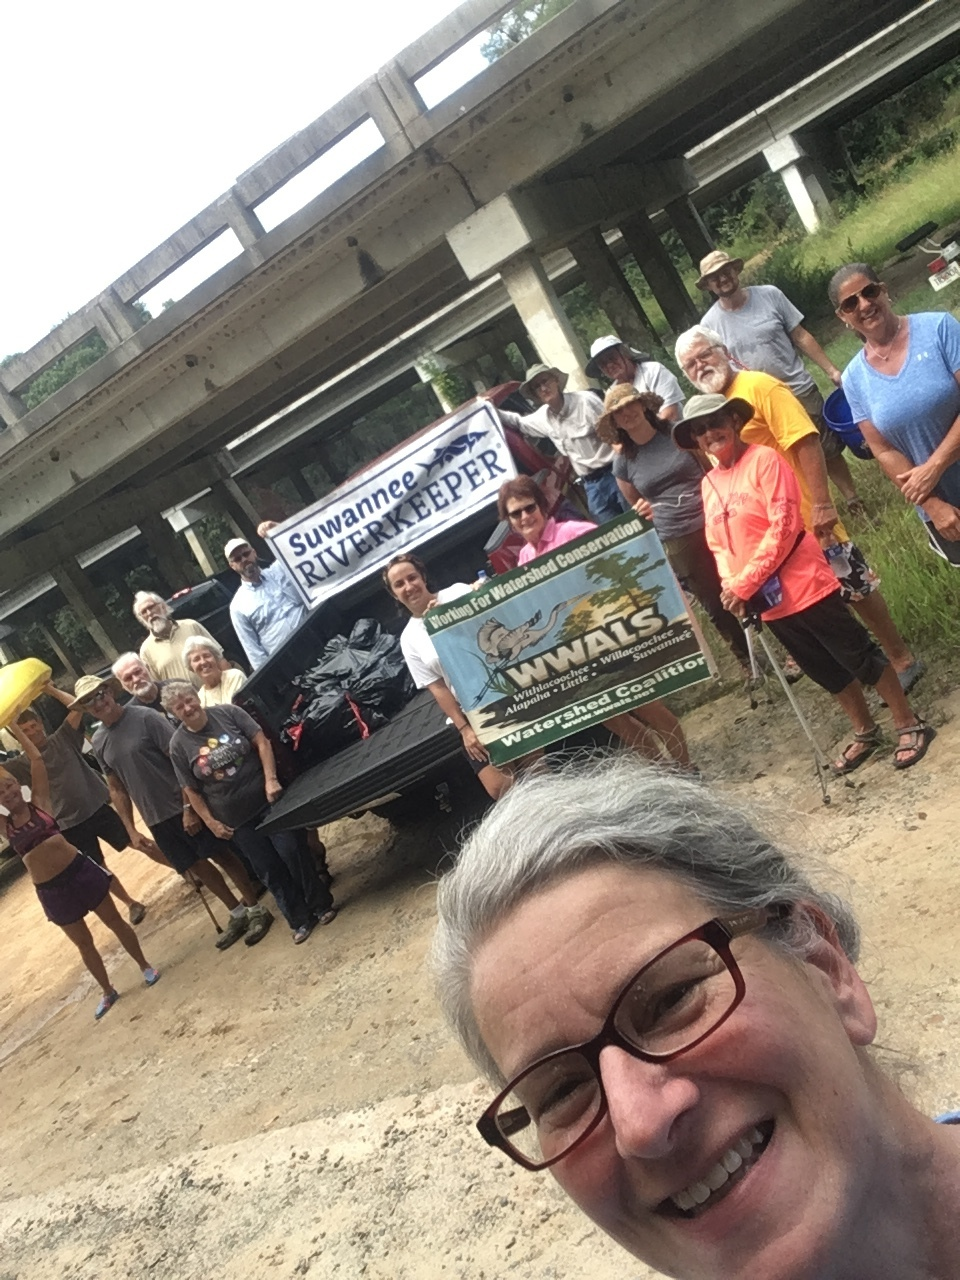 960x1280 Gretchen the photographer, Banner, in WWALS Cleanup at Sheboggy Boat Ramp, US 82, Alapaha River, by Gretchen Quarterman, for WWALS.net, 9 September 2018